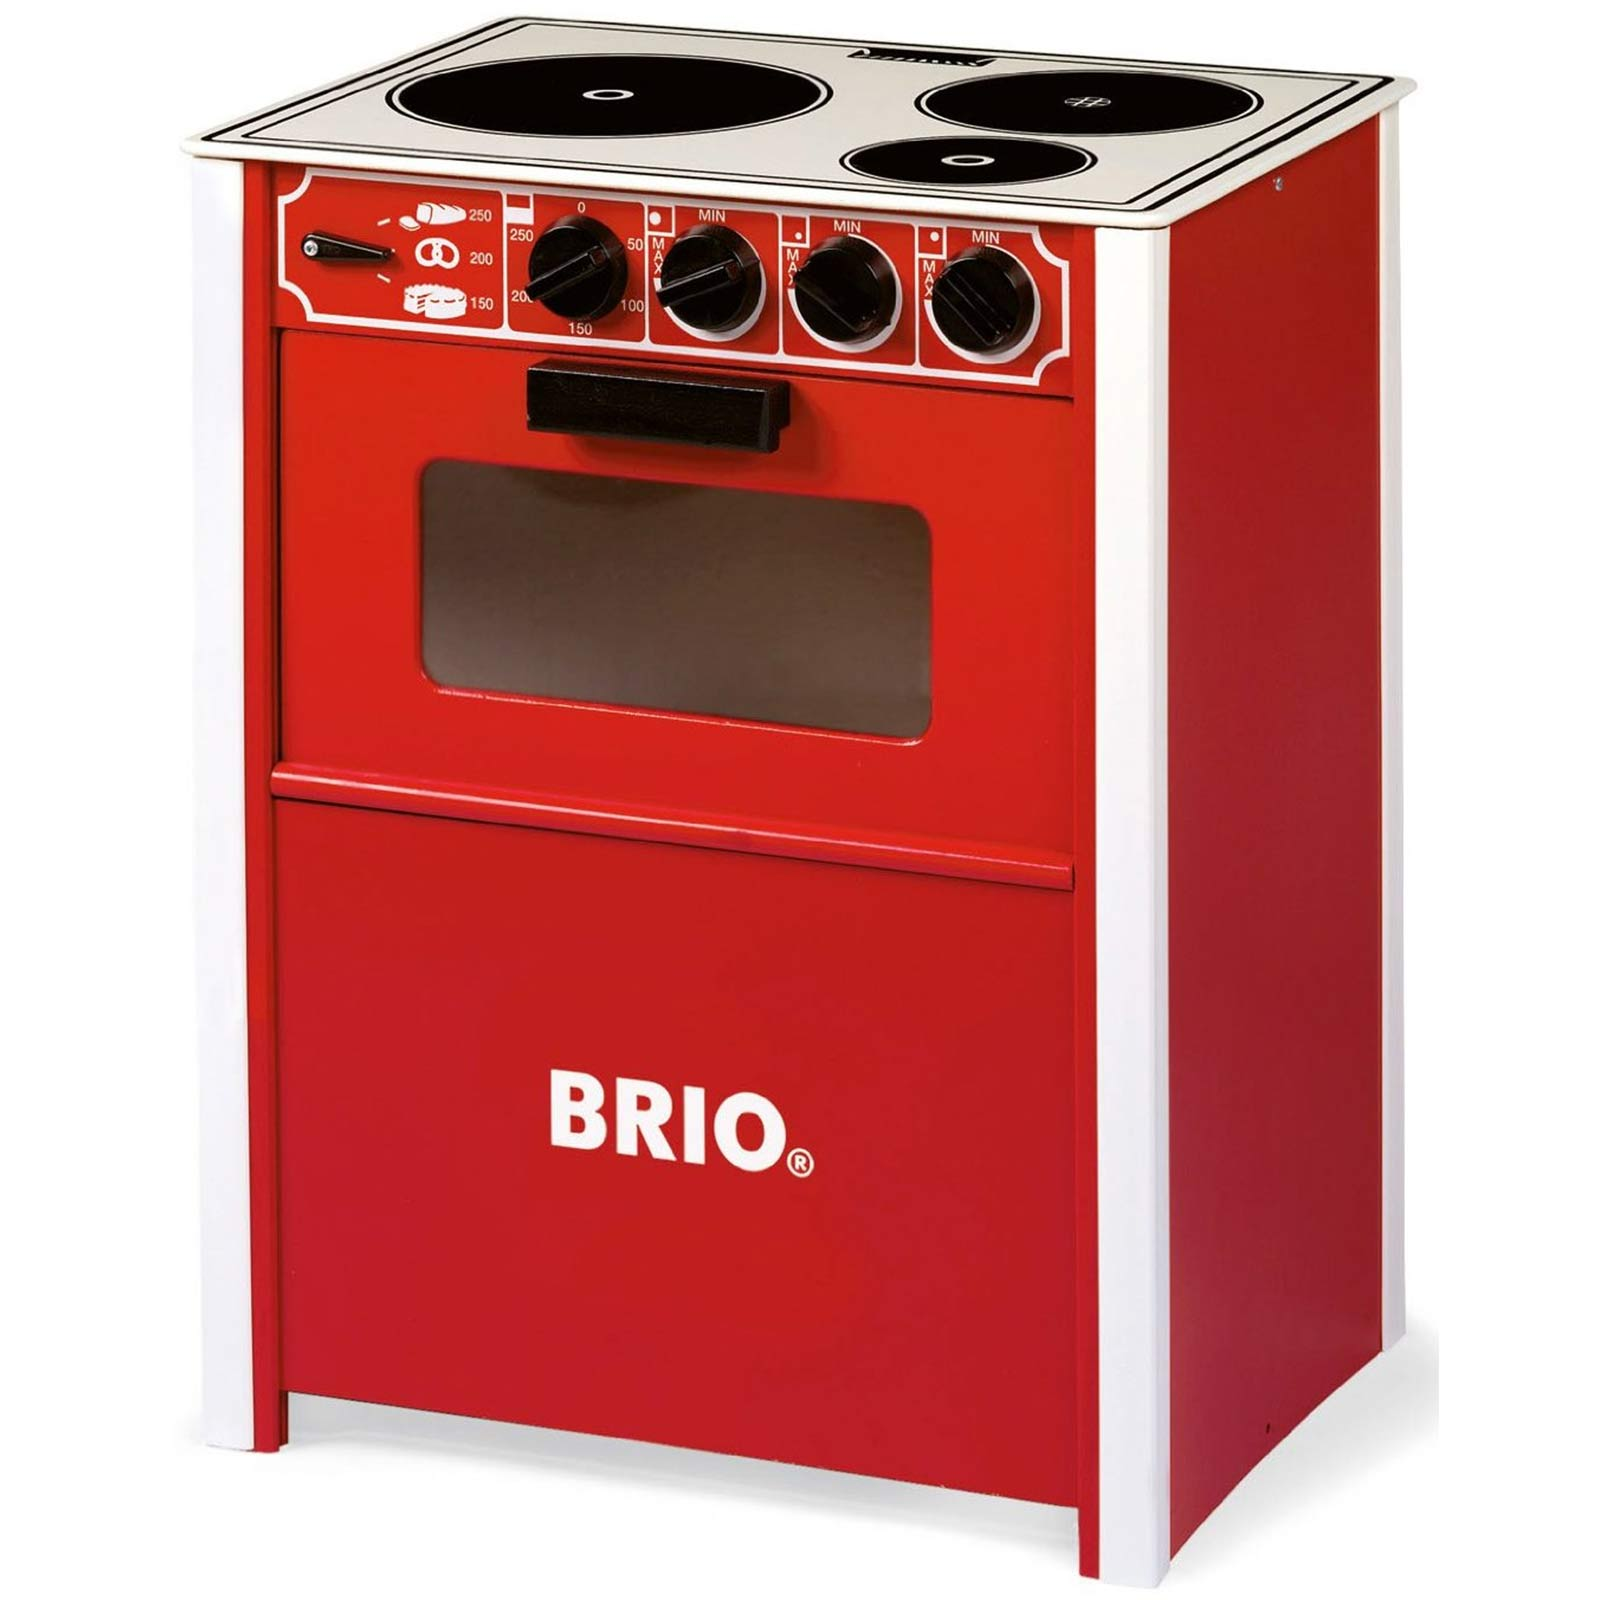 brio red wooden play stove role play toy gift baby child kitchen oven hob new ebay. Black Bedroom Furniture Sets. Home Design Ideas